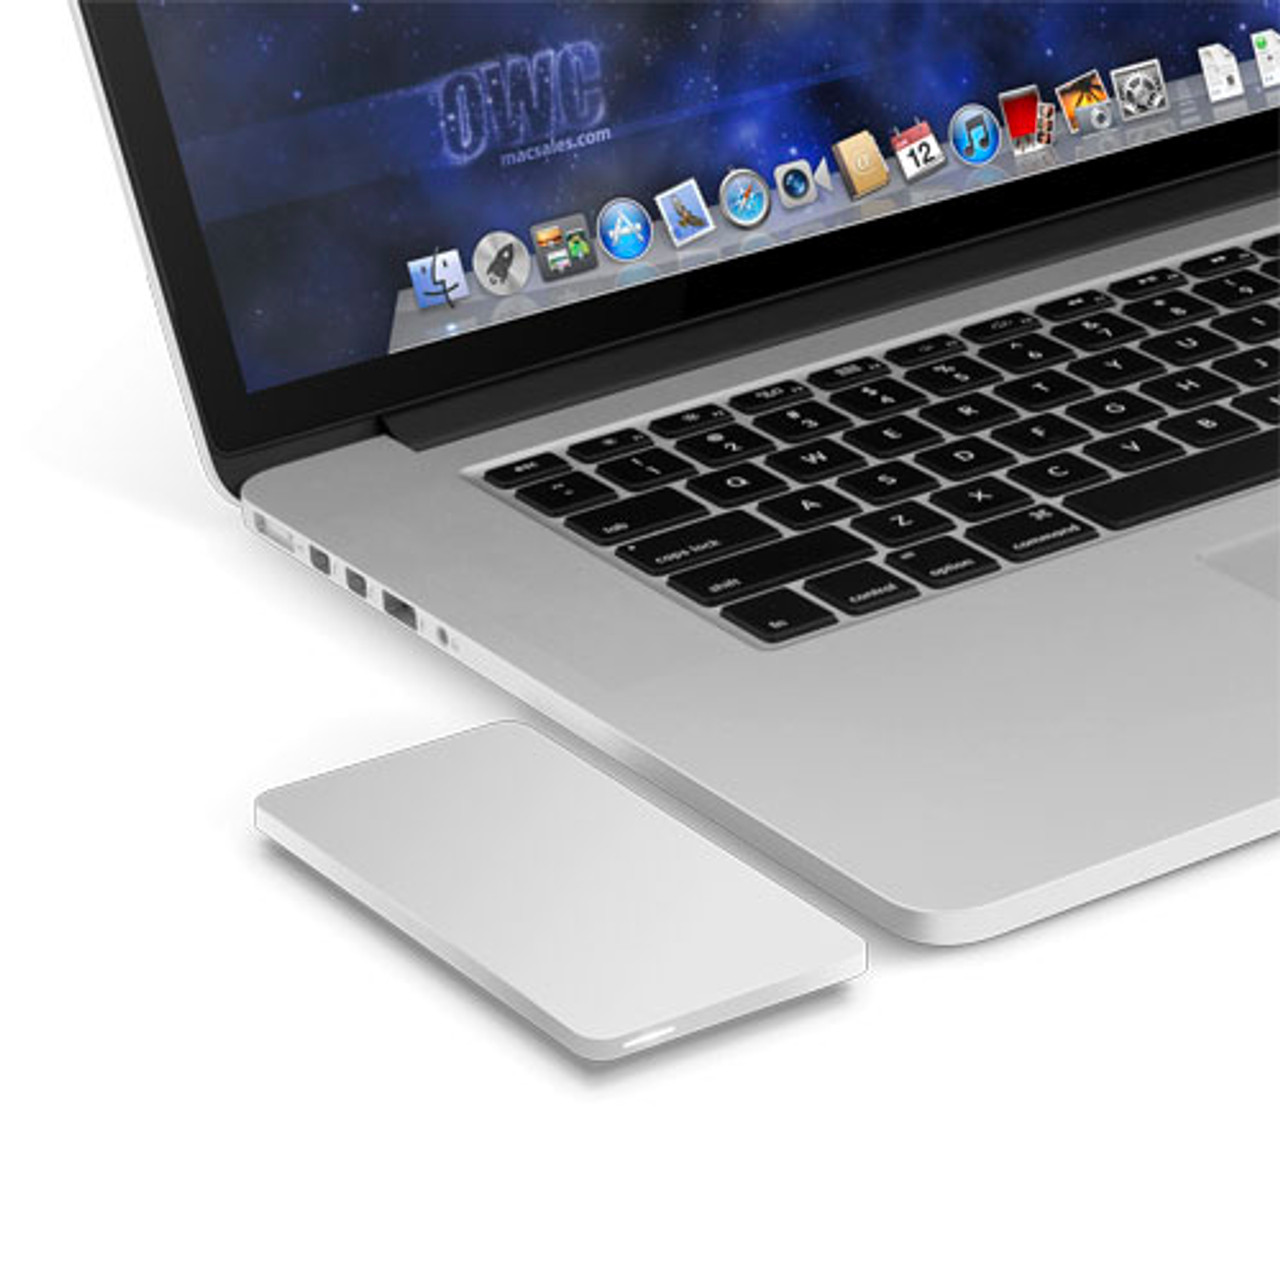 OWC Envoy Pro Portable Bus-Powered USB 3.0 SSD Enclosure for 2012 / Early 2013 MacBook Pro With Retina Display